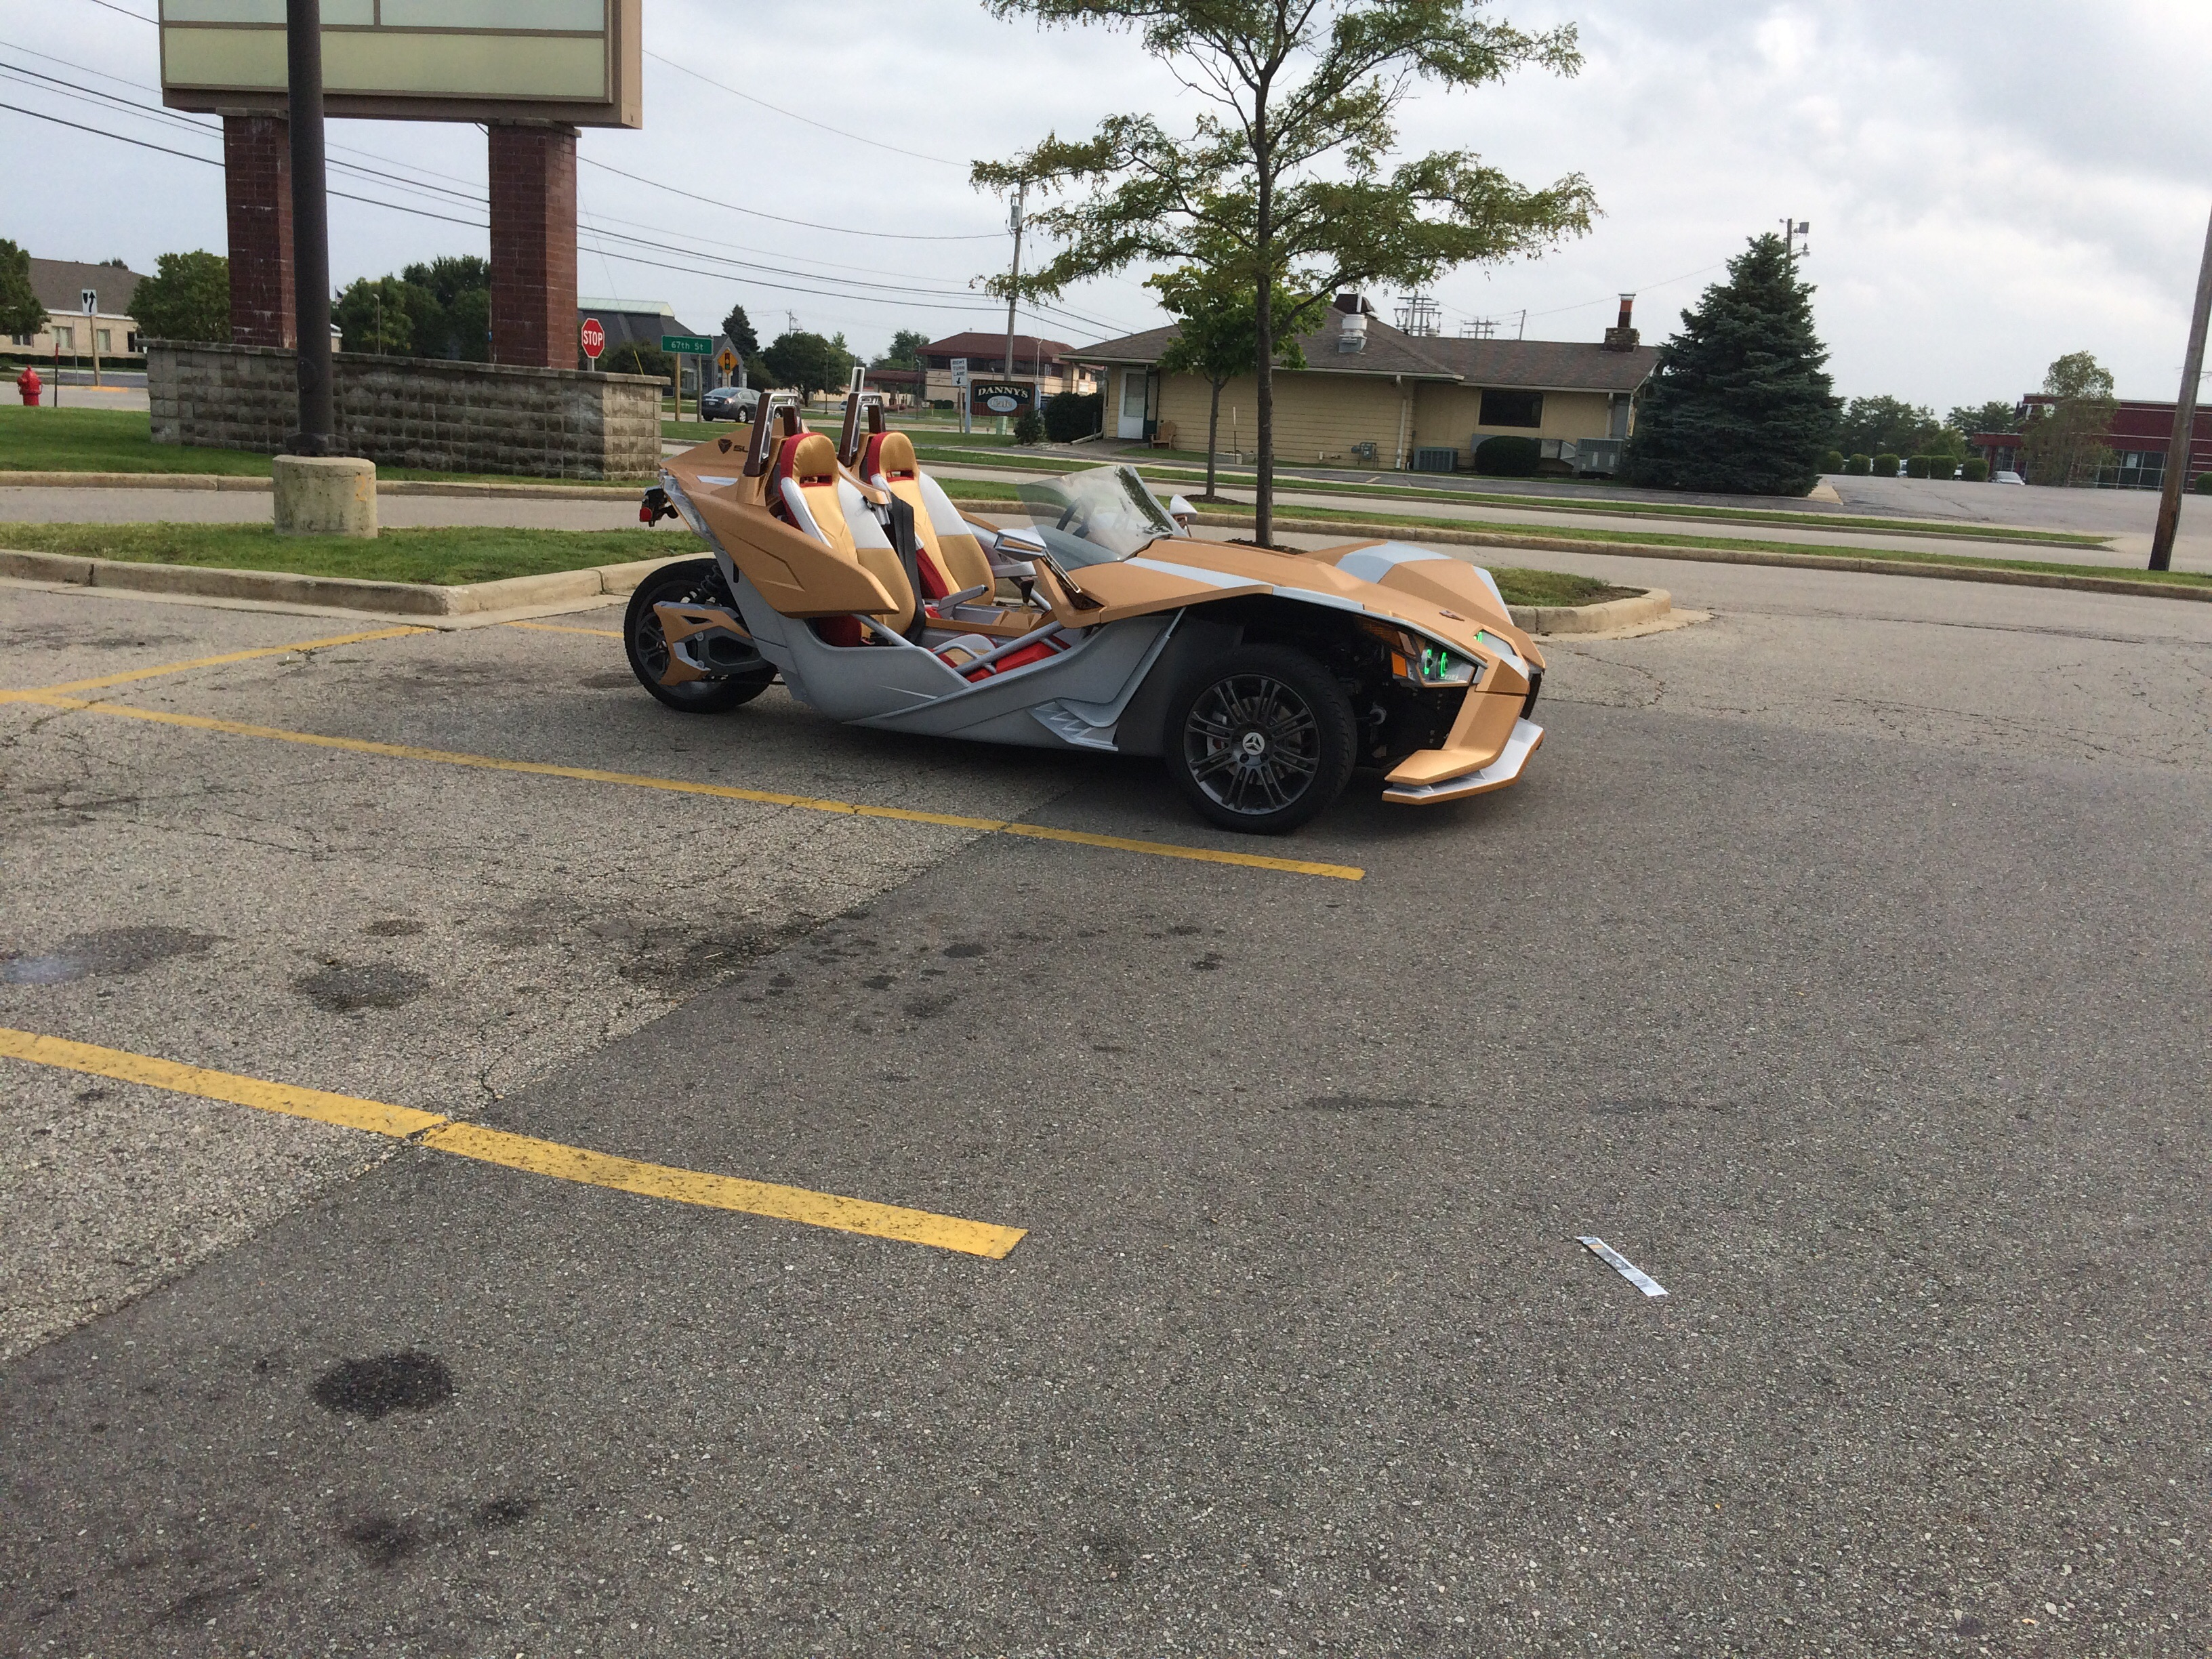 Saw a sweet Polaris slingshot today, it seemed to be in iron